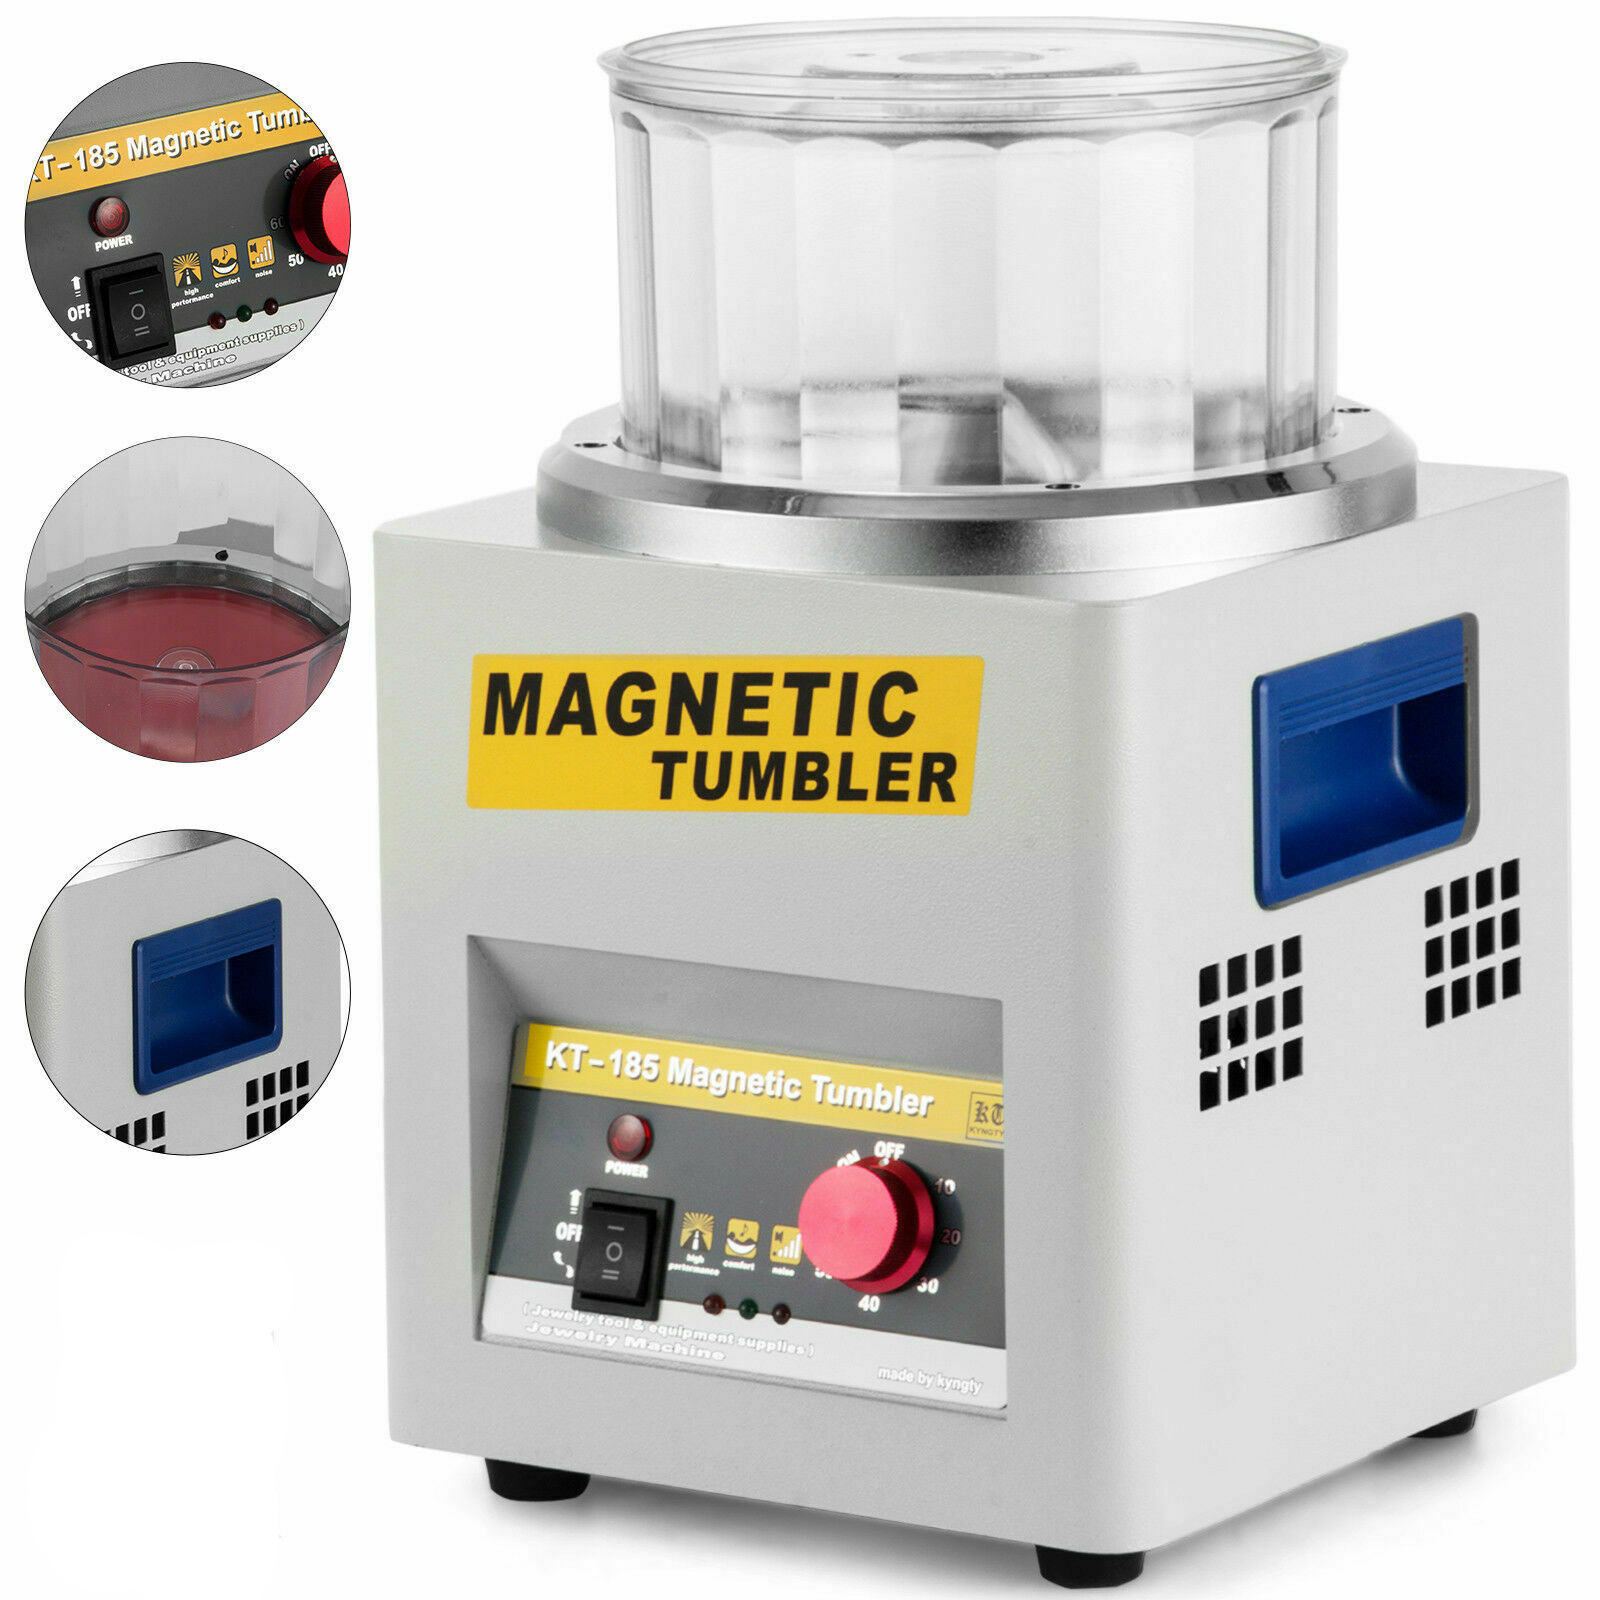 Manufacturer CE Magnetic Tumbler Jewelry Polisher Finisher Finishing Machine, Mini Magnetic Polishing Machine AC 110V/220V